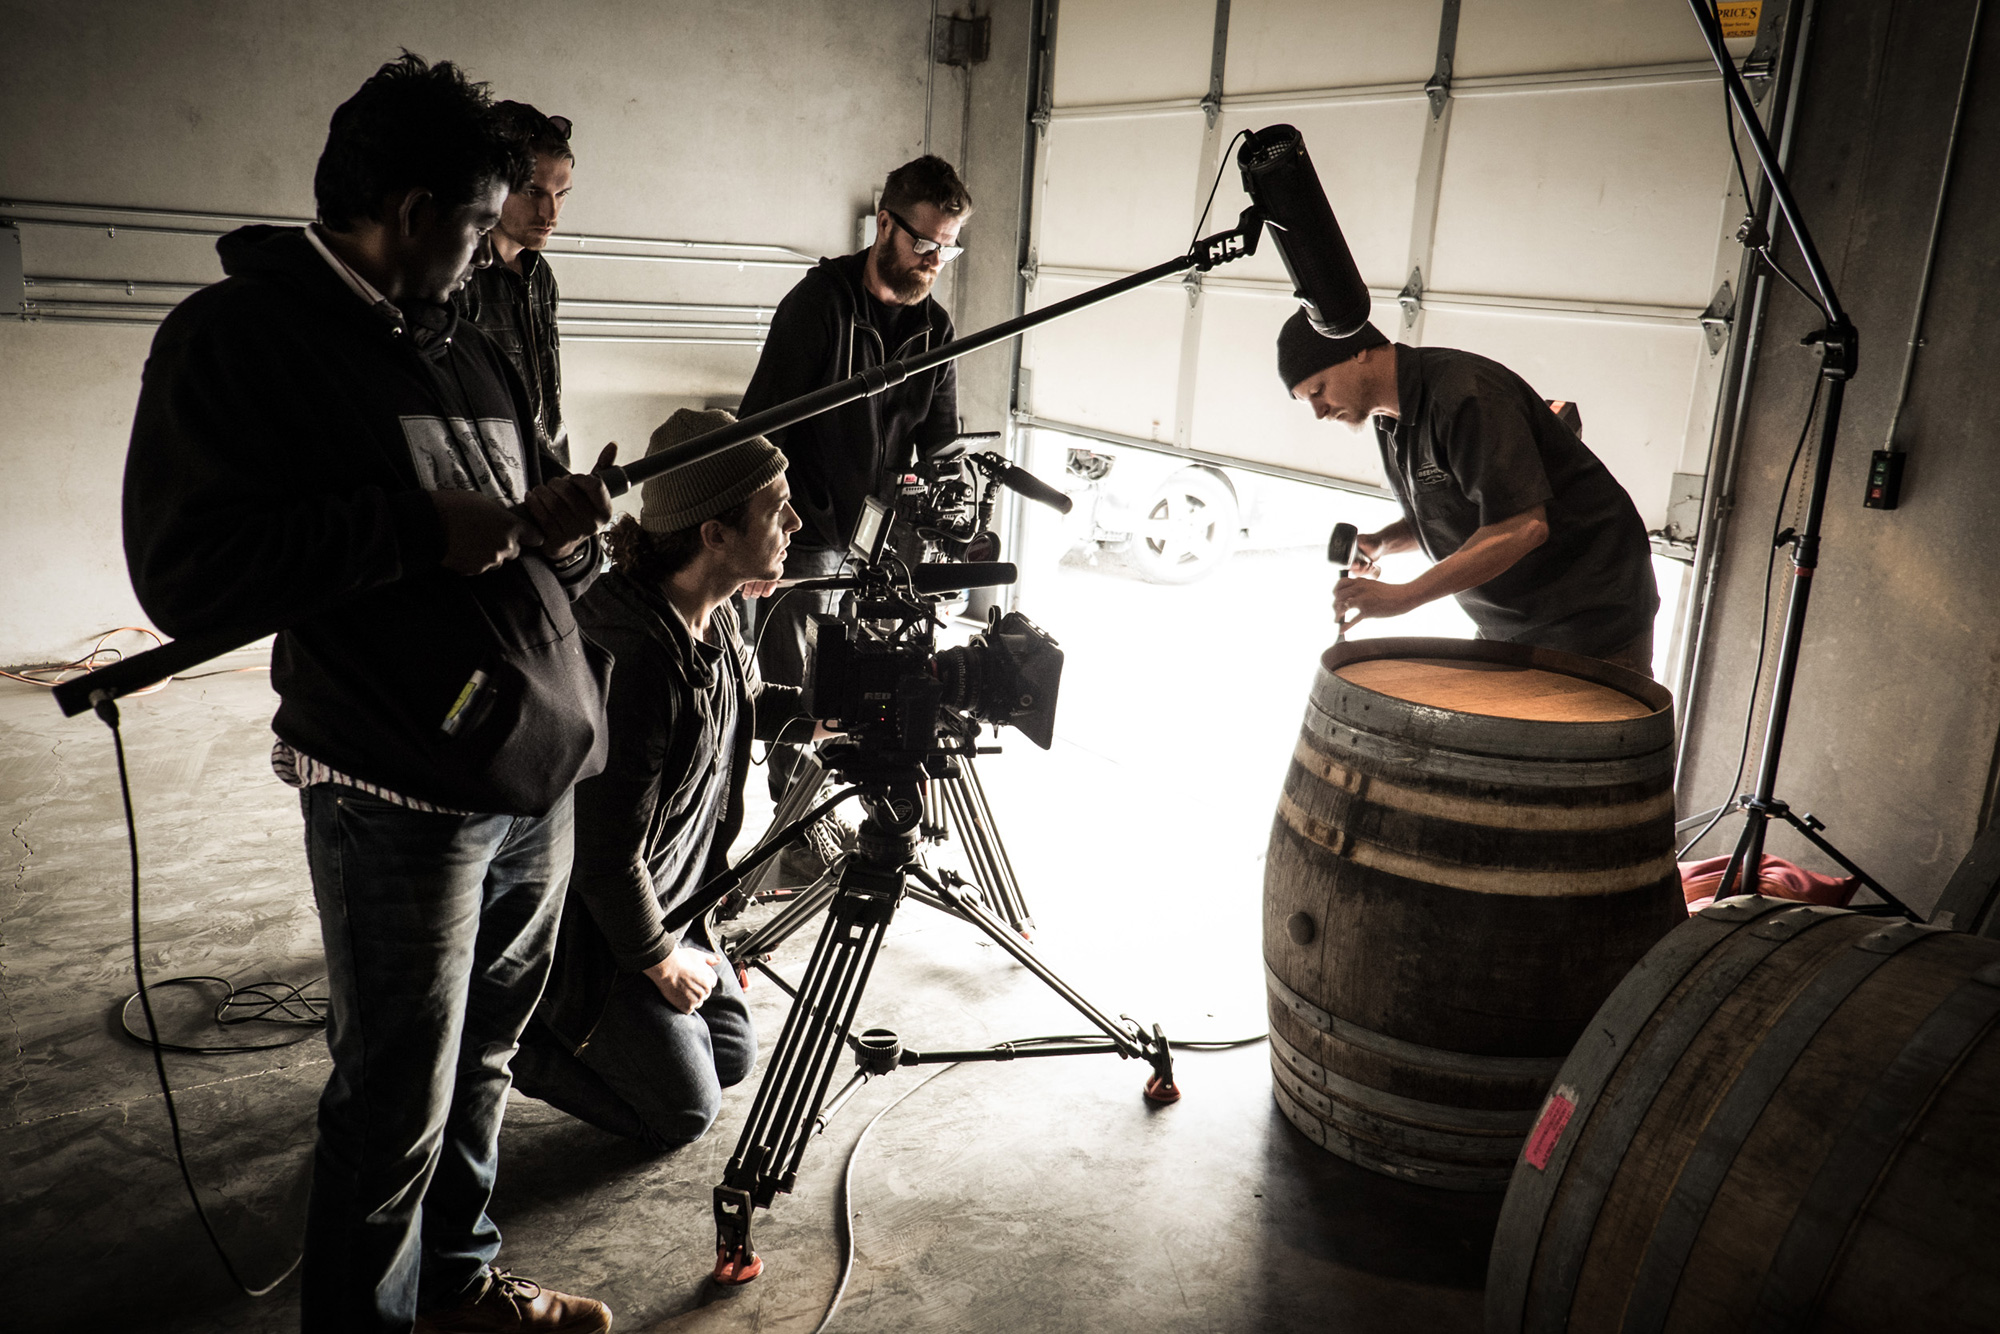 Beehive Distilling Small Batch Craft Gin Salt Lake City Utah 2